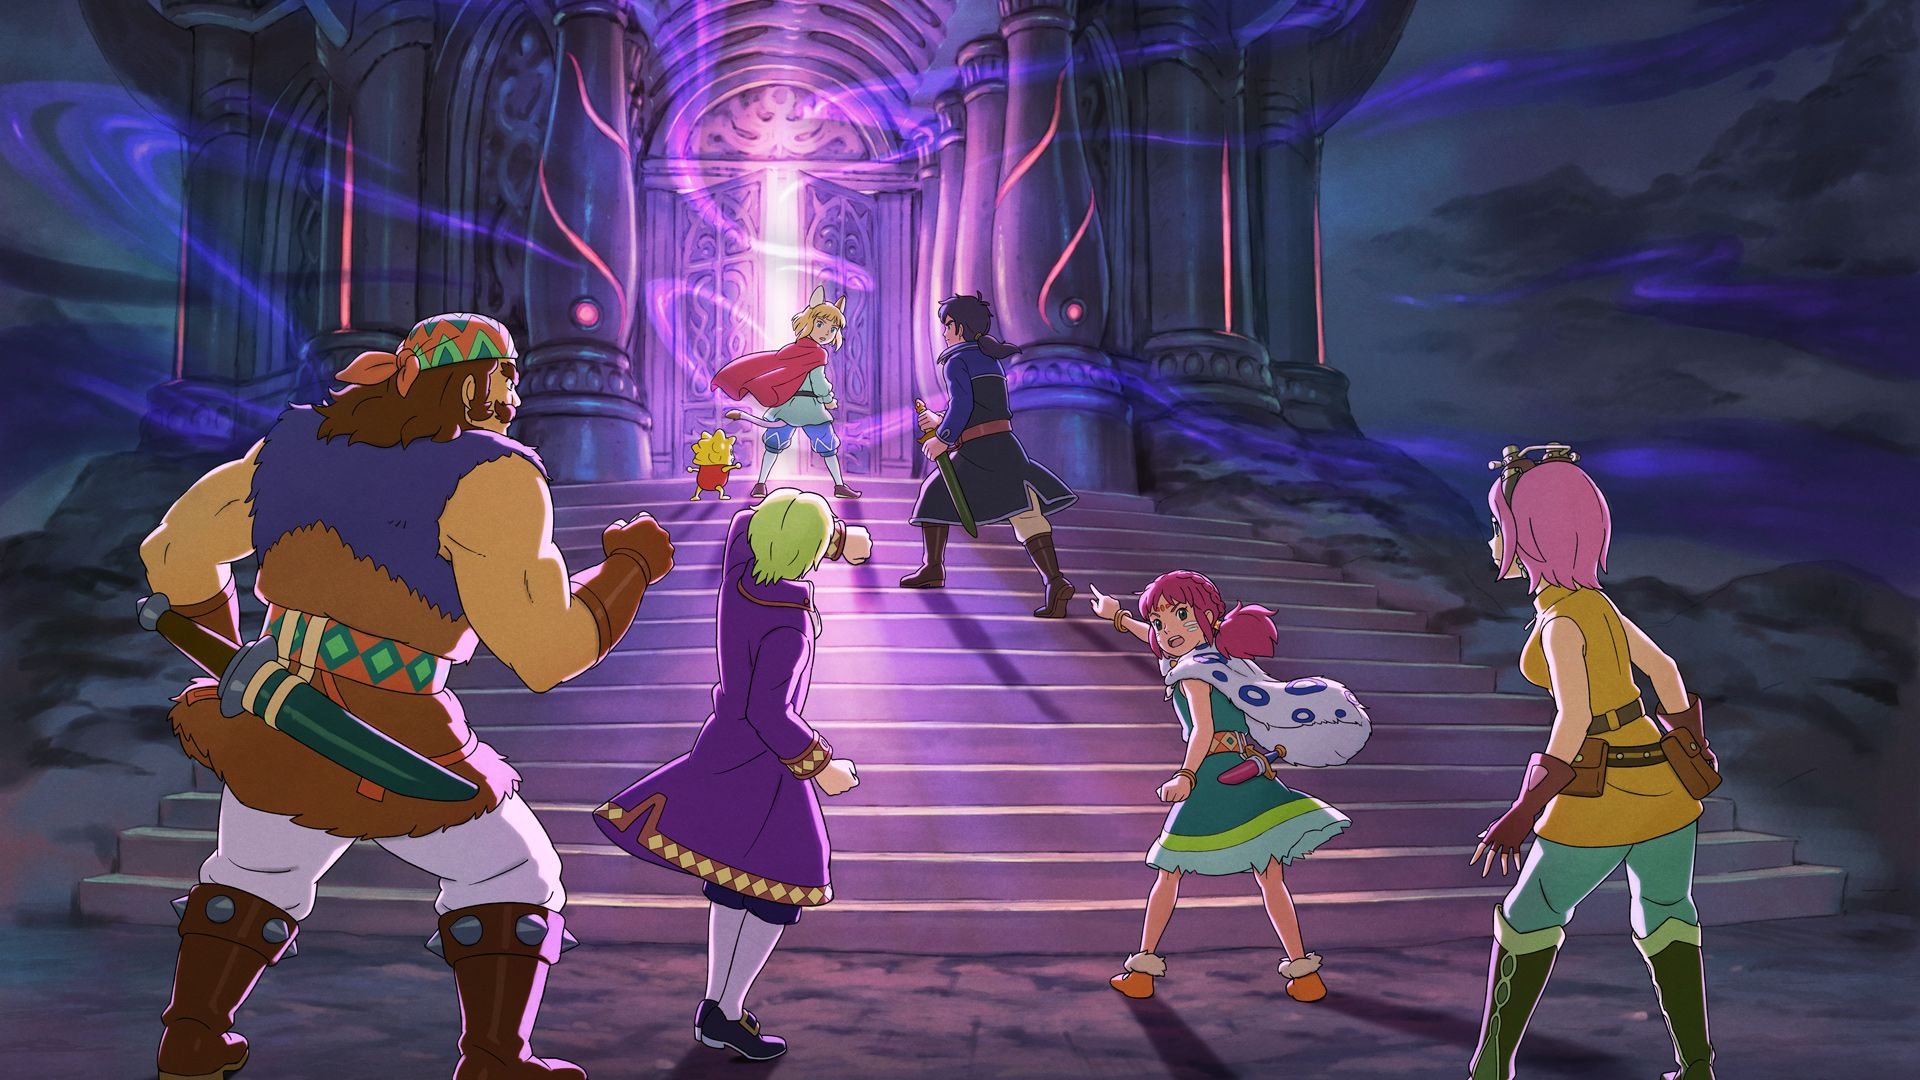 Explore The Lair of the Lost Lord in new DLC for NI NO KUNI II: REVENANT KINGDOM